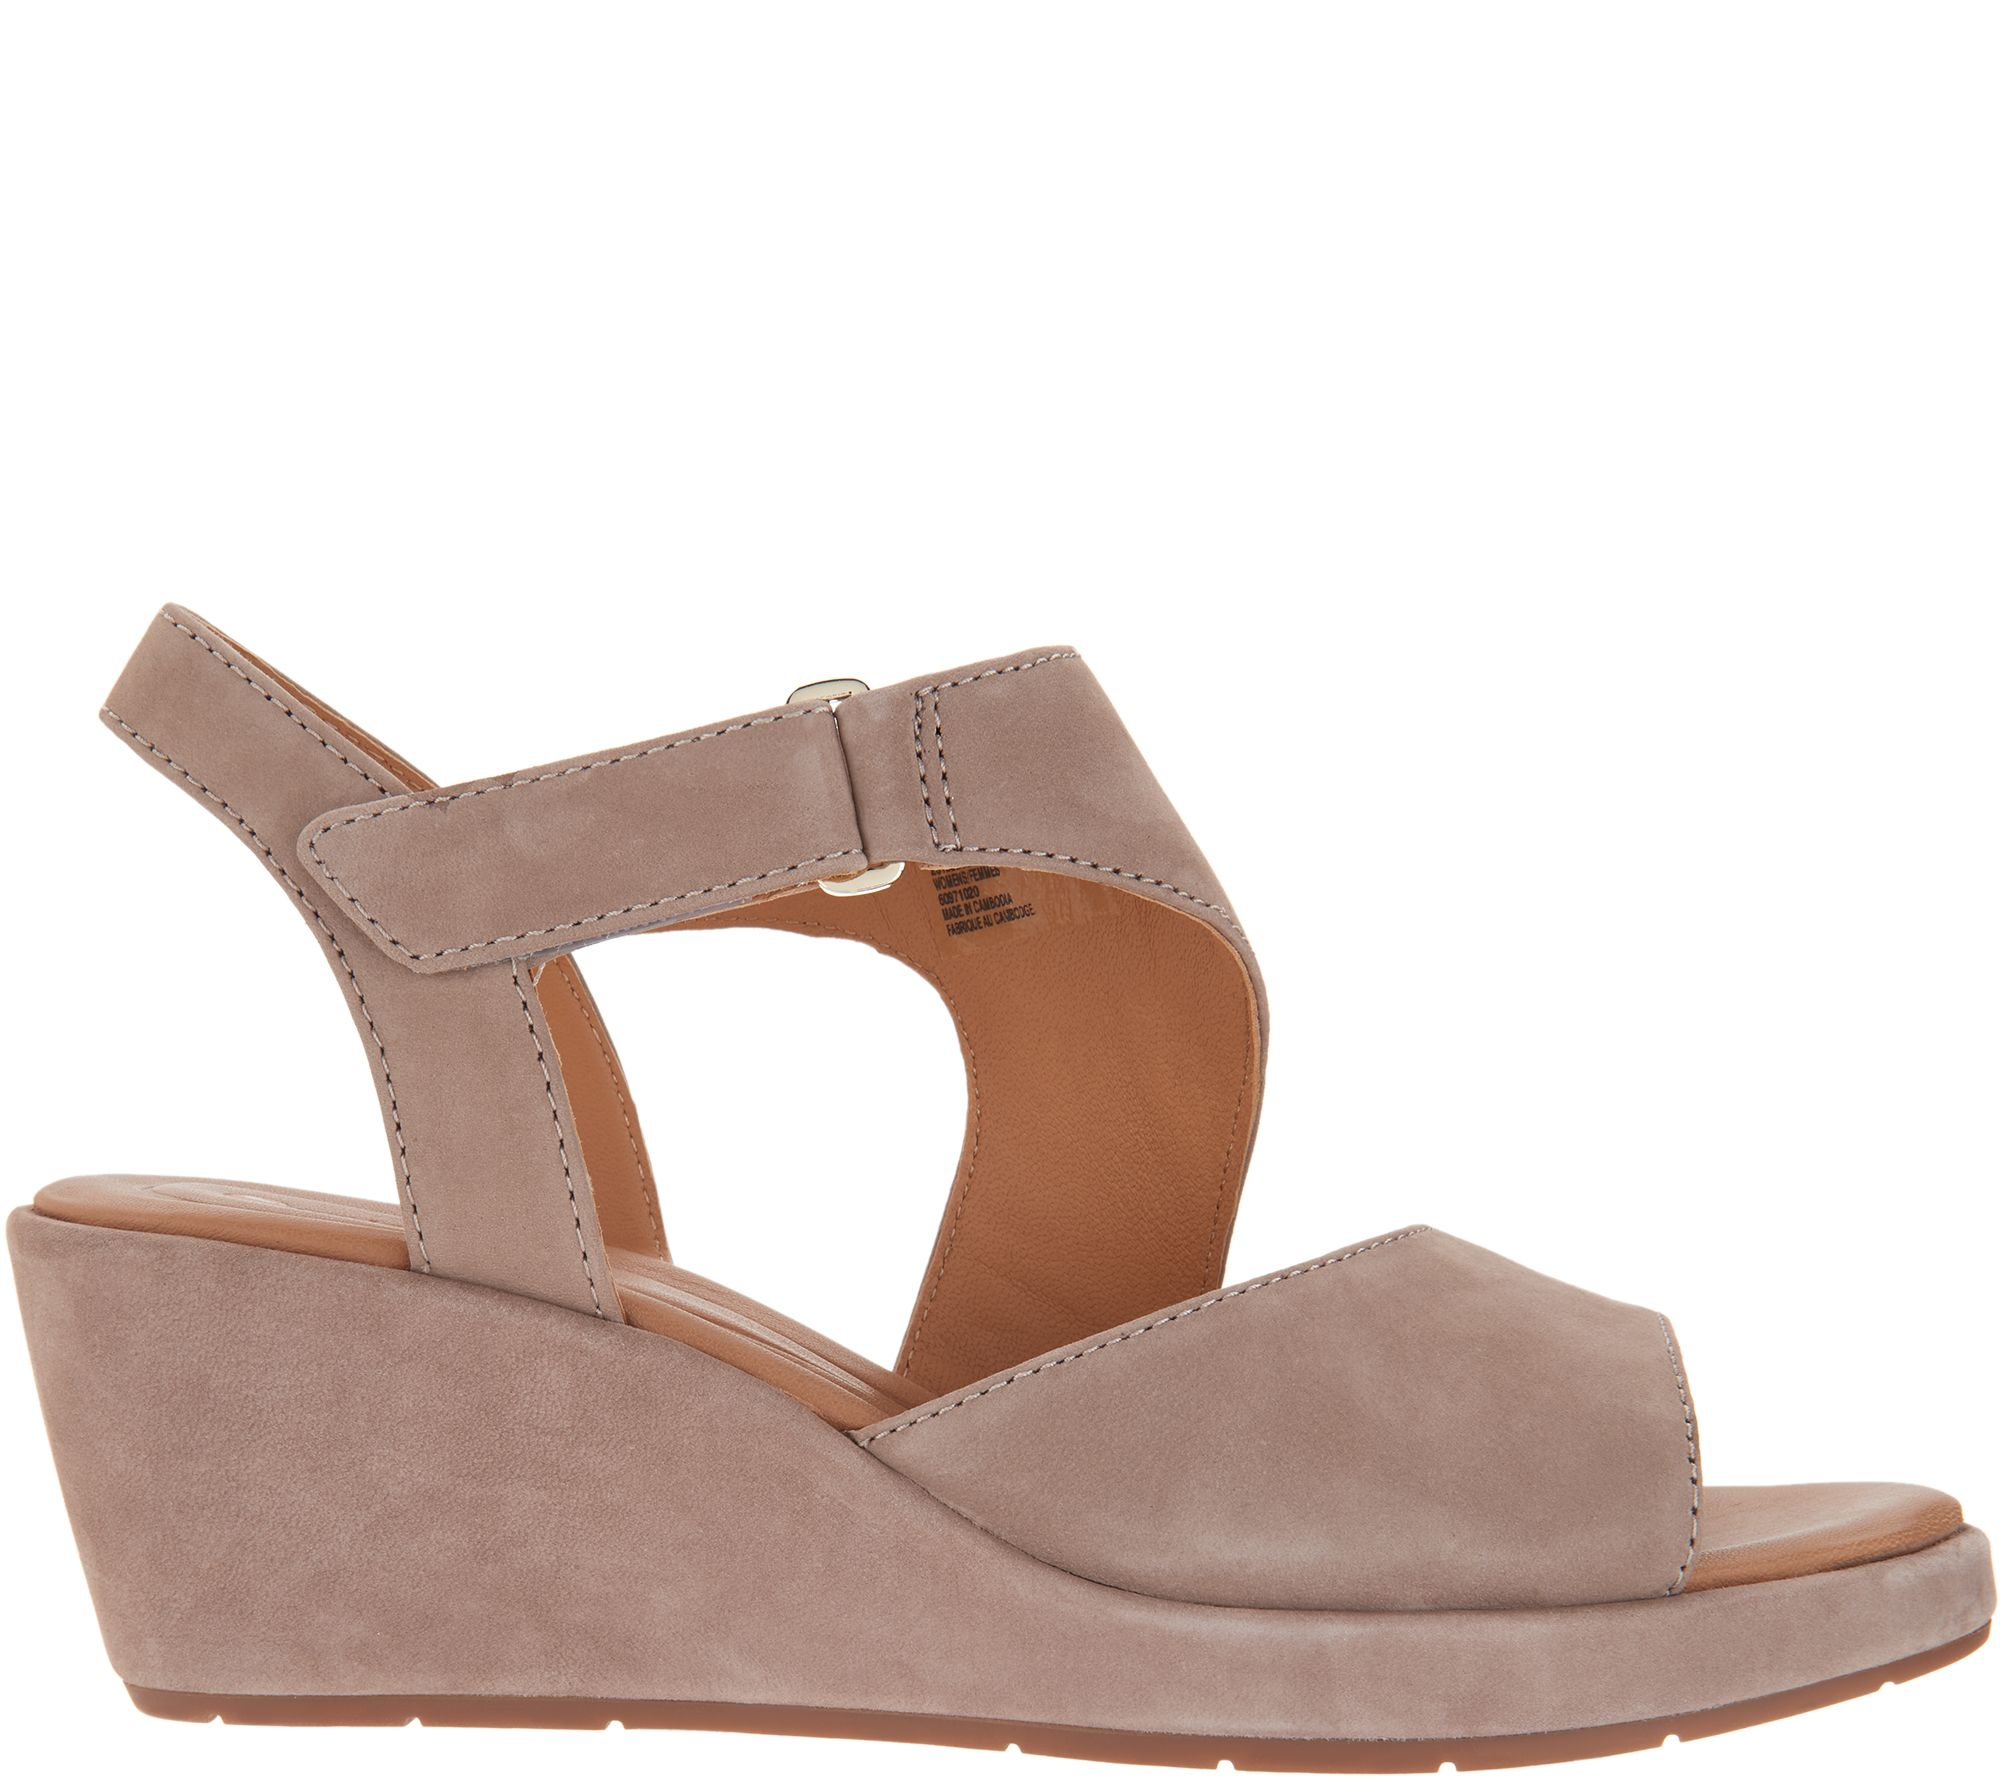 6ea26ec4c Clarks UnStructured Leather Wedge Sandals - Un Plaza Sling - Page 1 —  QVC.com